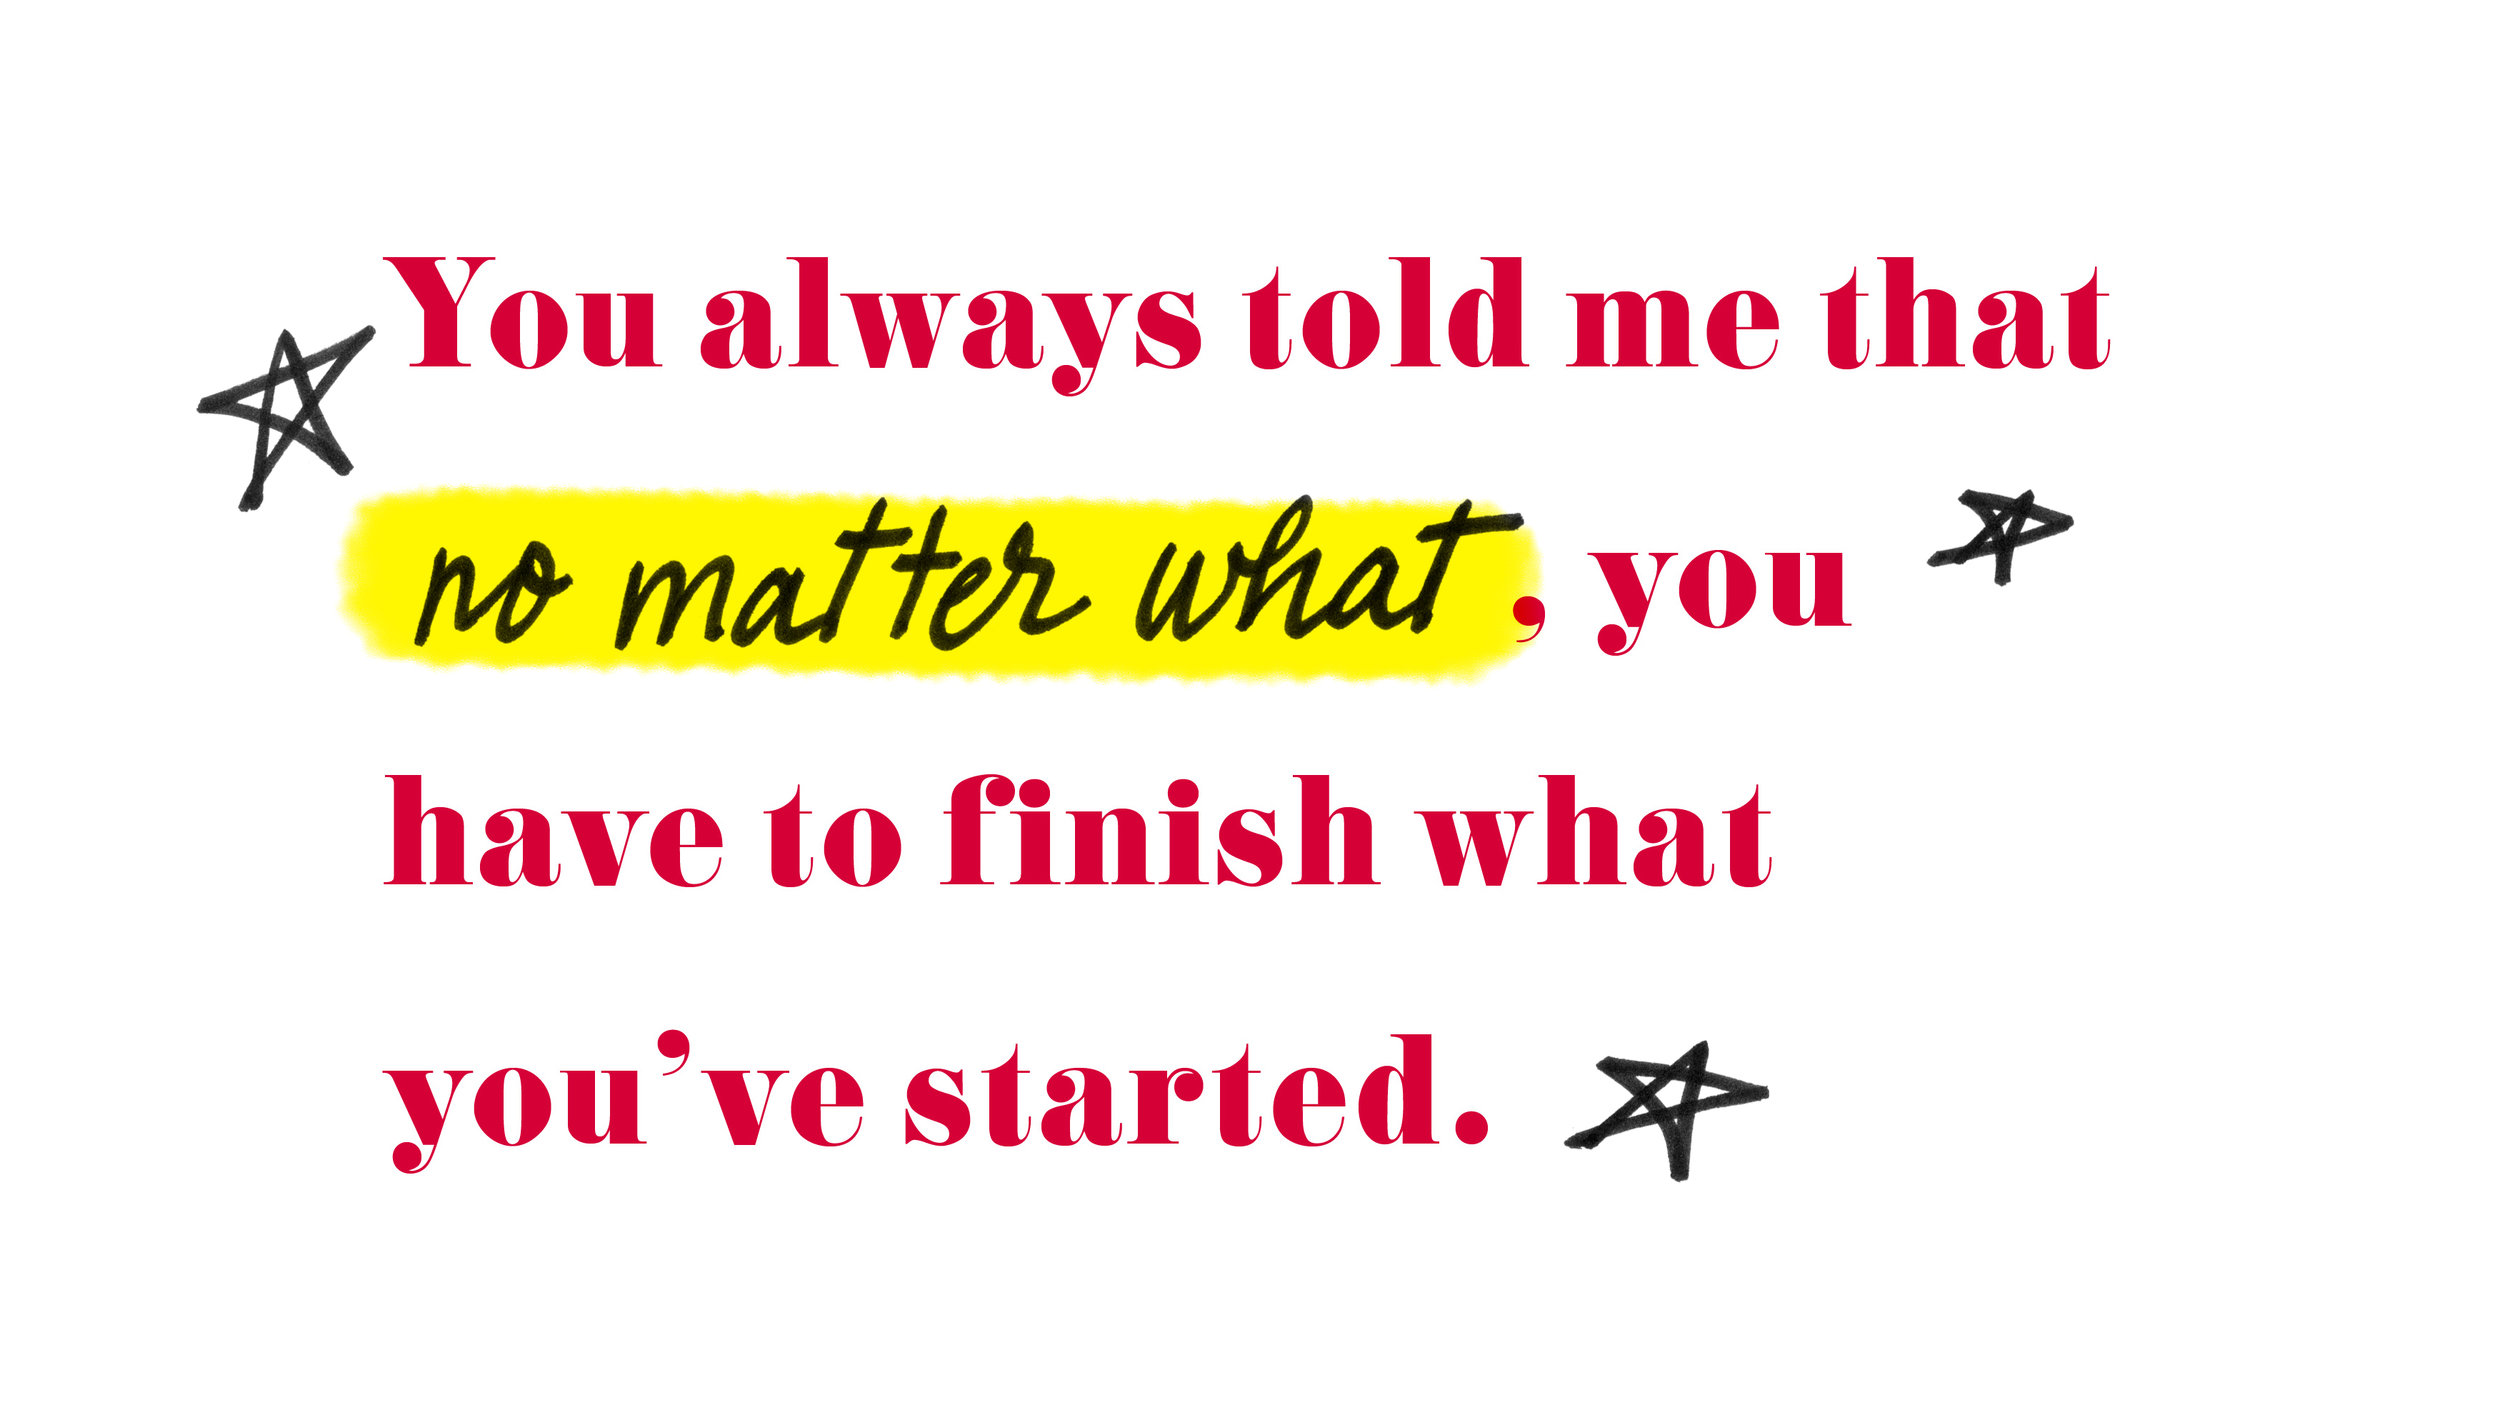 """Quote by Nastia Liukin - """"You always told me that no matter what, you have to finish what you've started."""""""